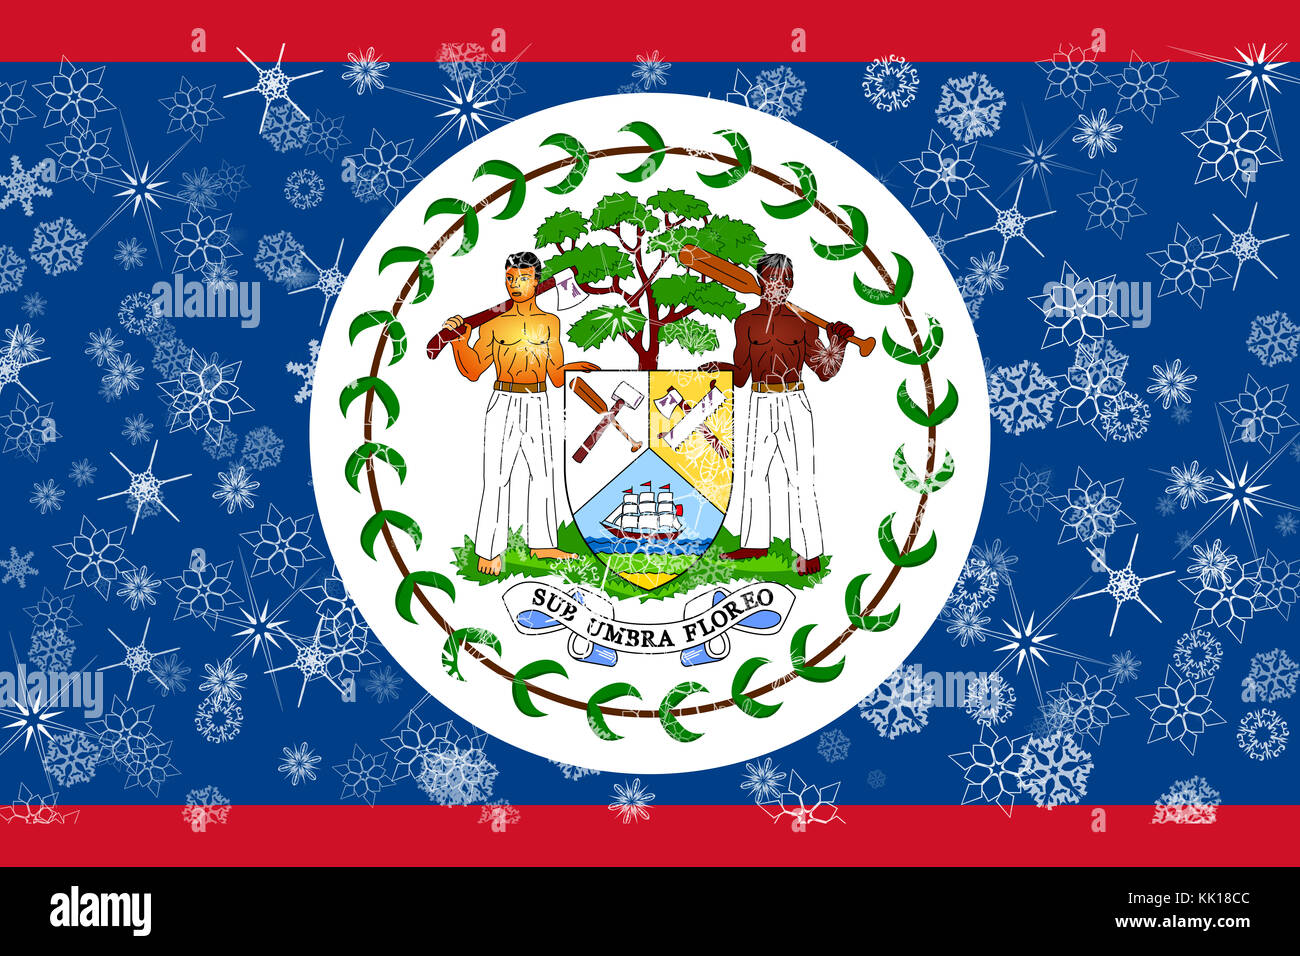 National flag of belize stock photos national flag of belize belize winter snowflake flag stock image biocorpaavc Image collections